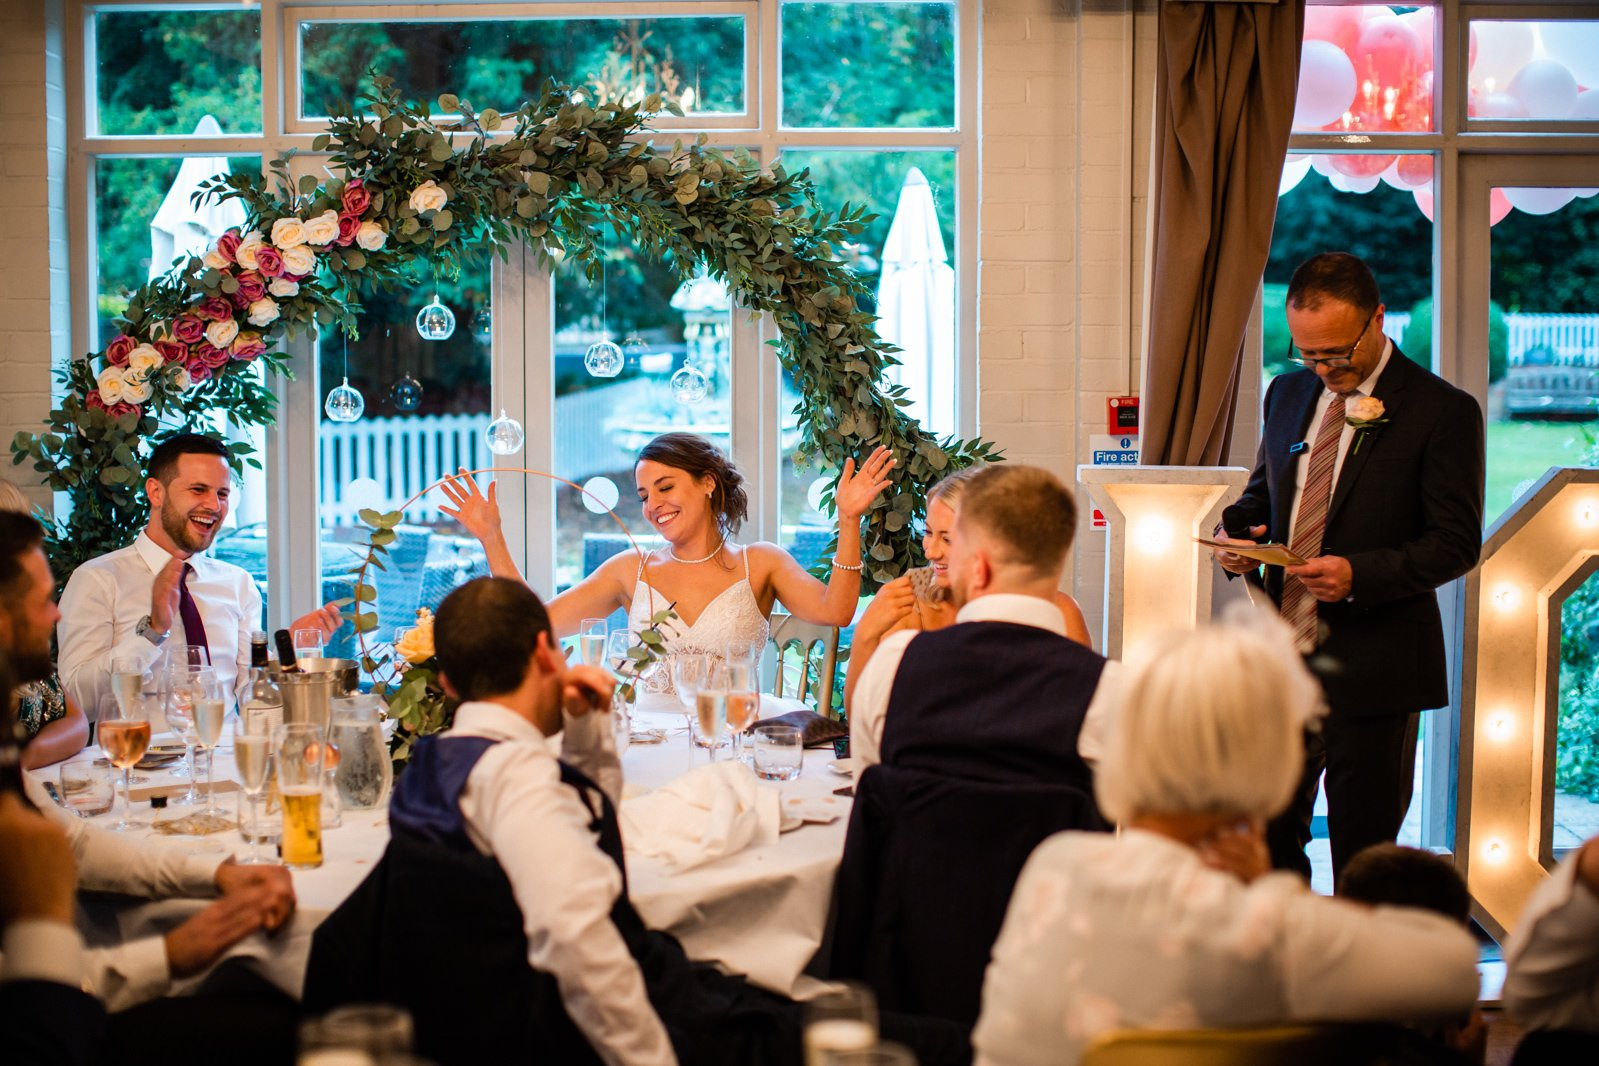 The Elephant Pangbourne Wedding - Stunning Kayleigh & Shane 74